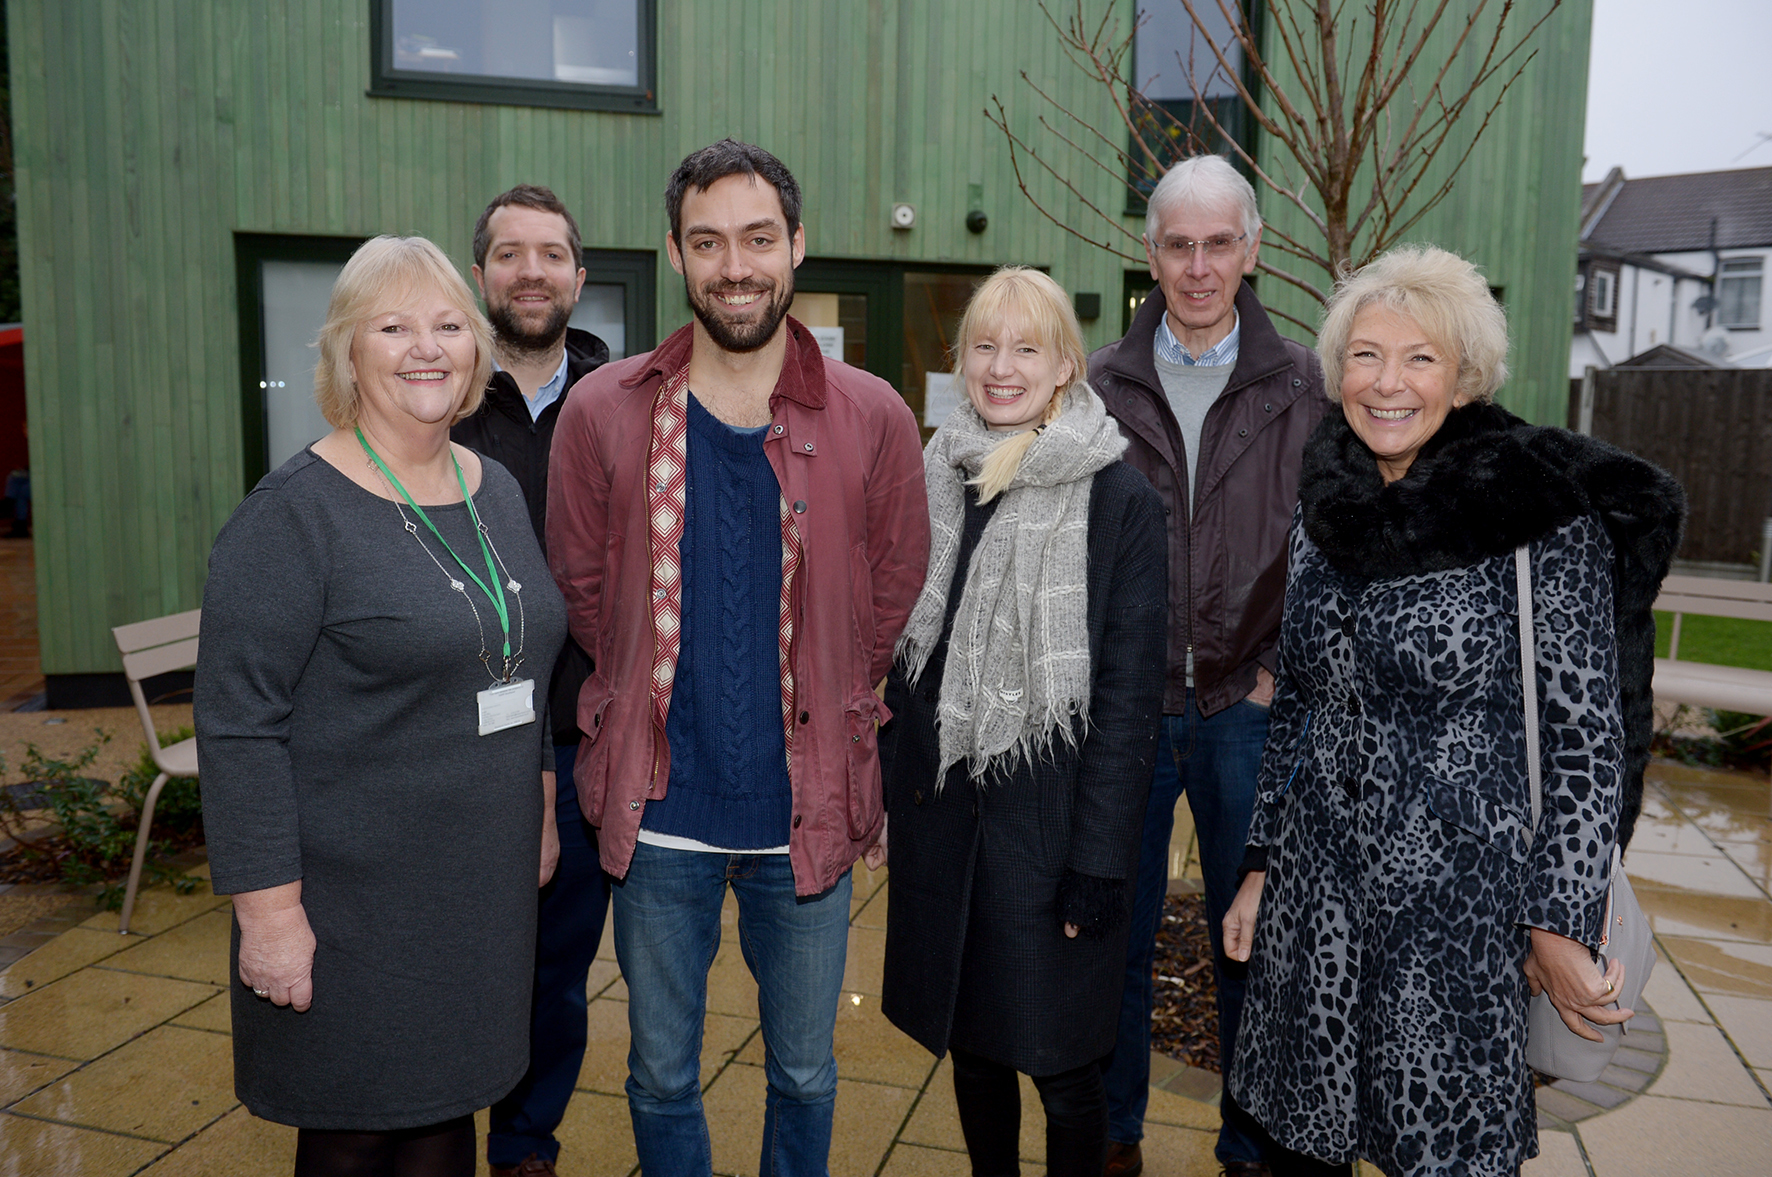 Gill Garwood, Steve Mansfield, Alex Hassell, Emma King, Peter Thorne and Nicky Houston.Bradbury Centre, Harp.Actor Alex Hassell and Emma King are  visiting the centre. Alex is a patron of the charity.. ..